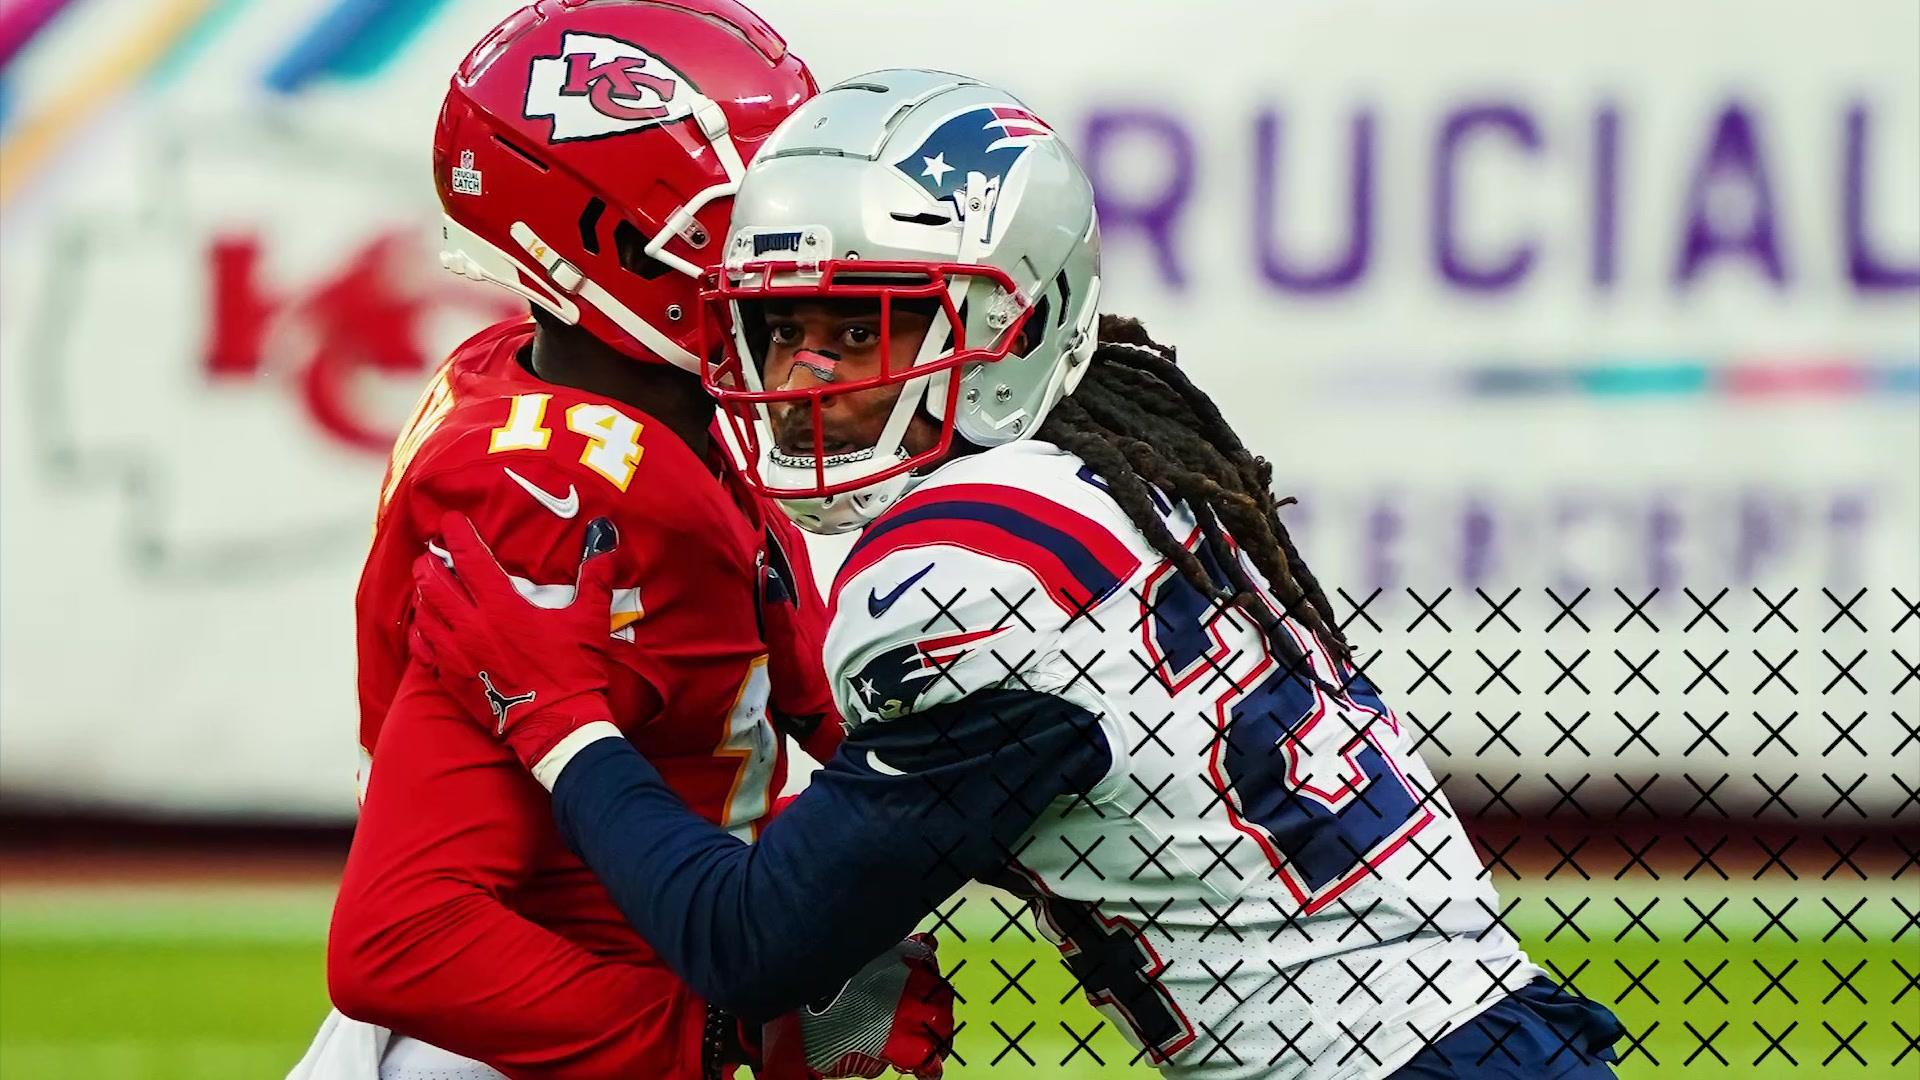 Bob Socci: Stephon Gilmore is the Patriots most likely trade chip right now